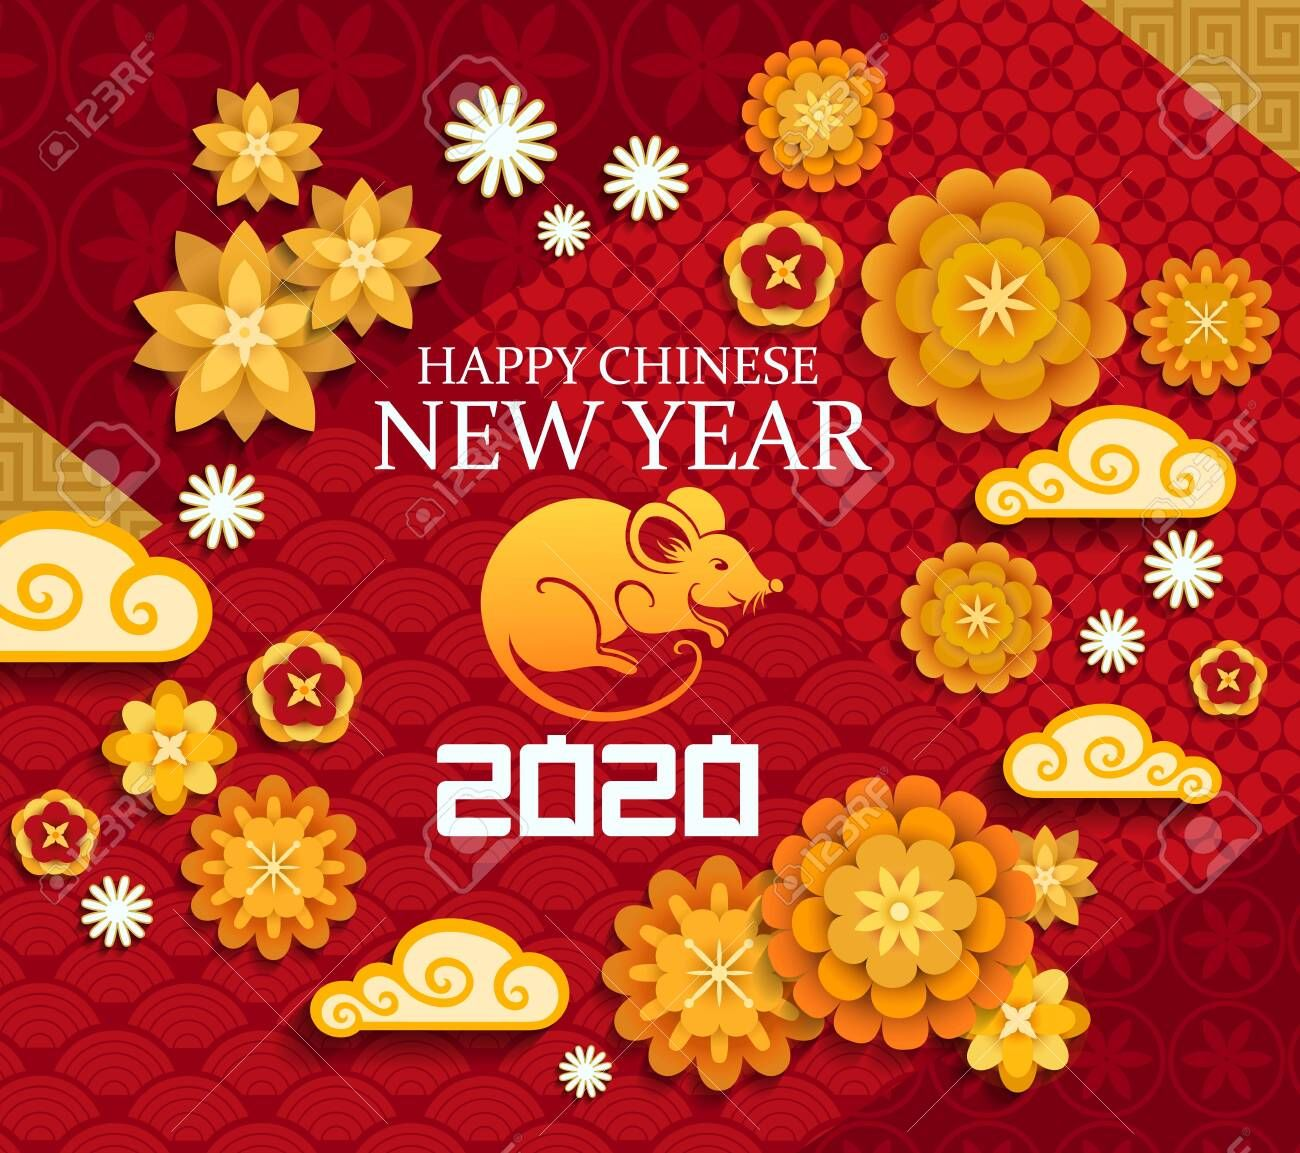 Happy Chinese New Year, 2020 rat mouse lunar zodiac sign